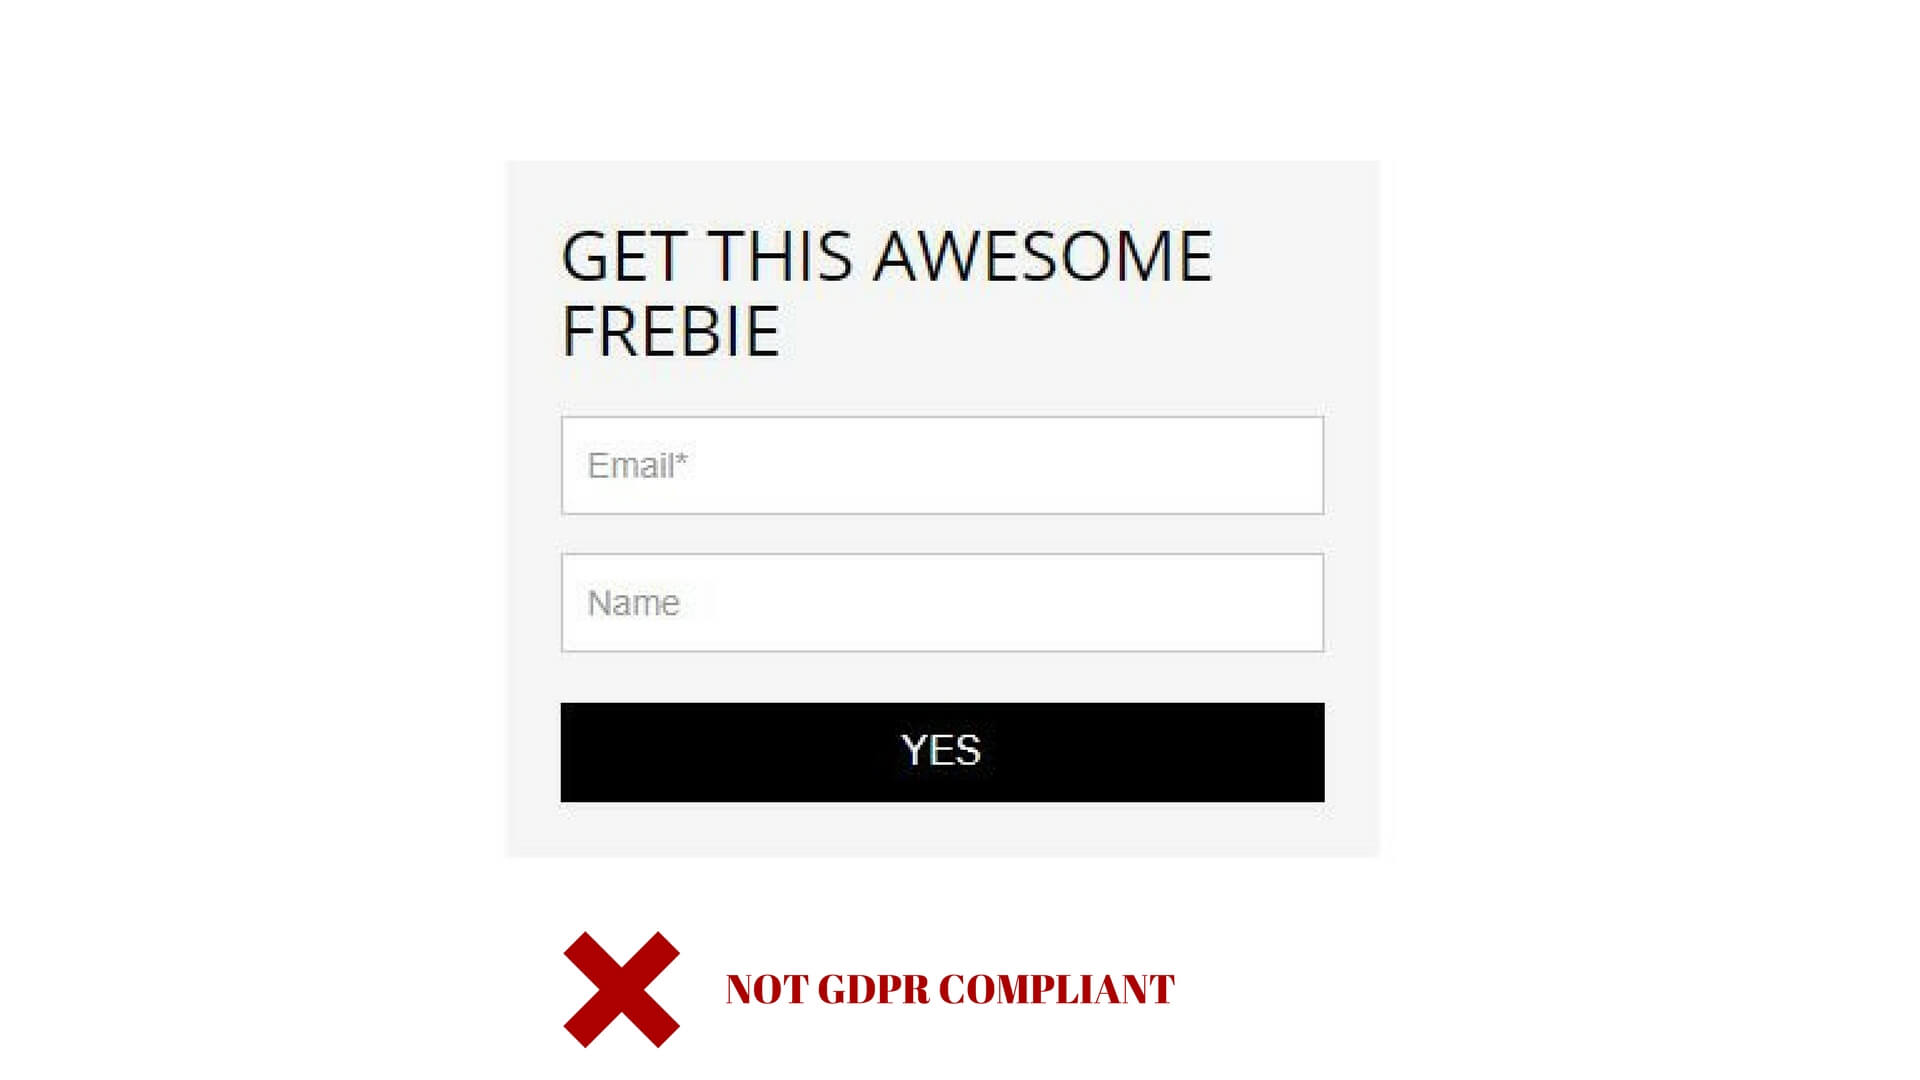 Sign up form - not GDPR compliant - no privacy policy